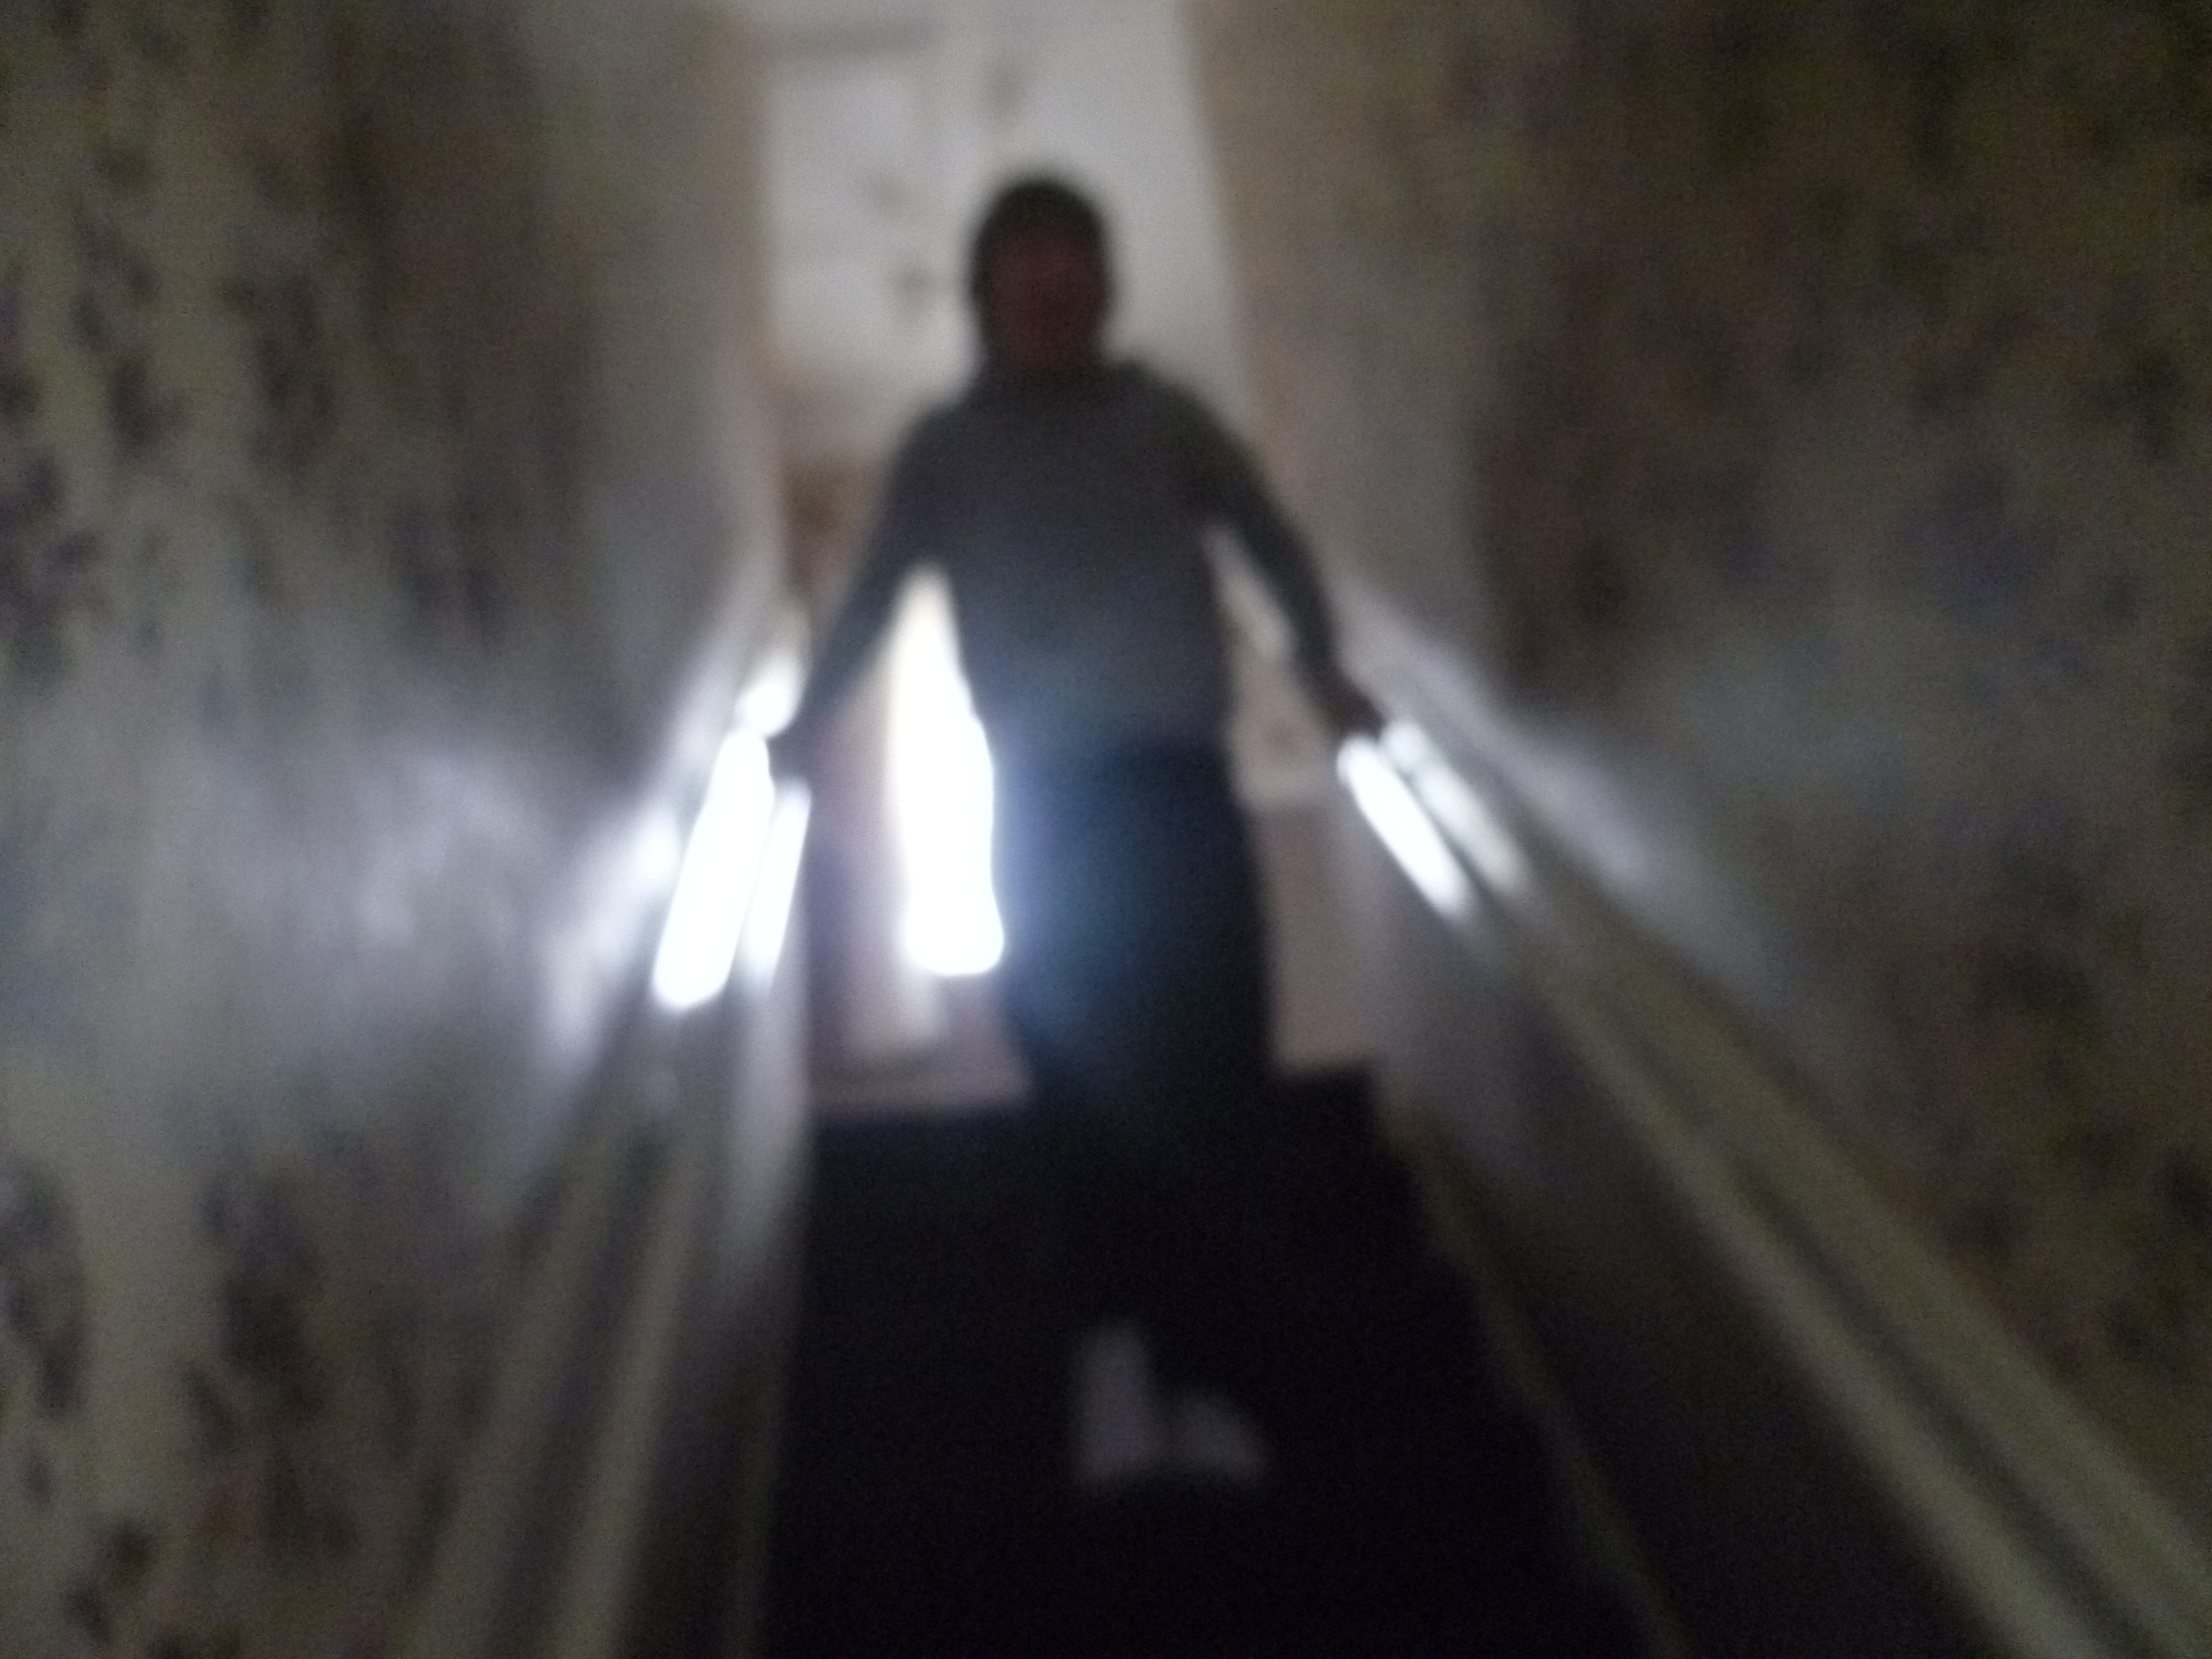 Photograph taken by a research participant's dad to show how he gets downstairs